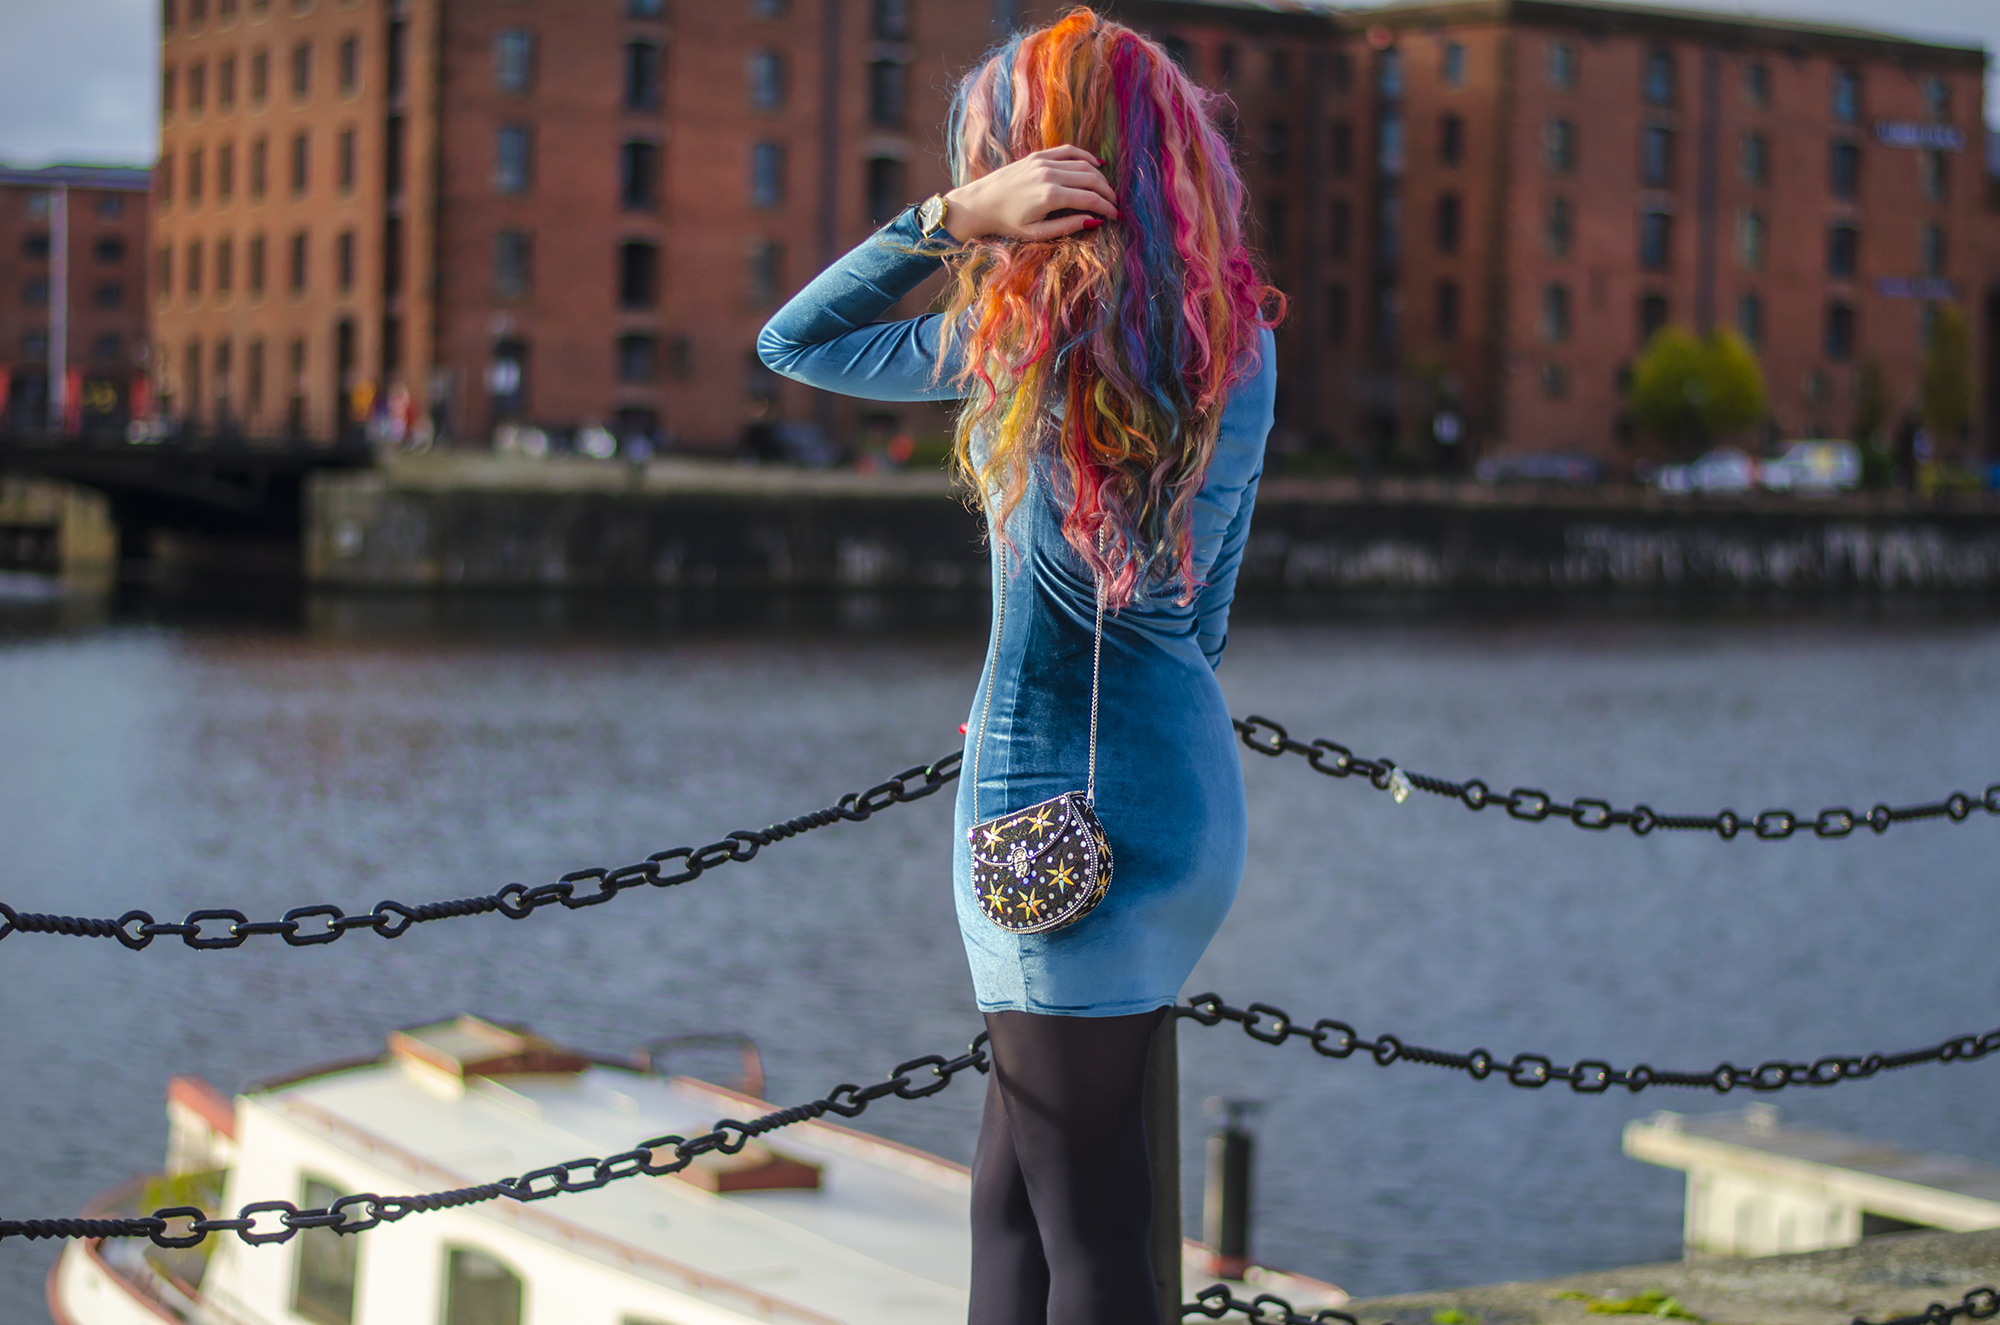 rainbow hair style blogger Stephi LaReine on Albert Dock Liverpool